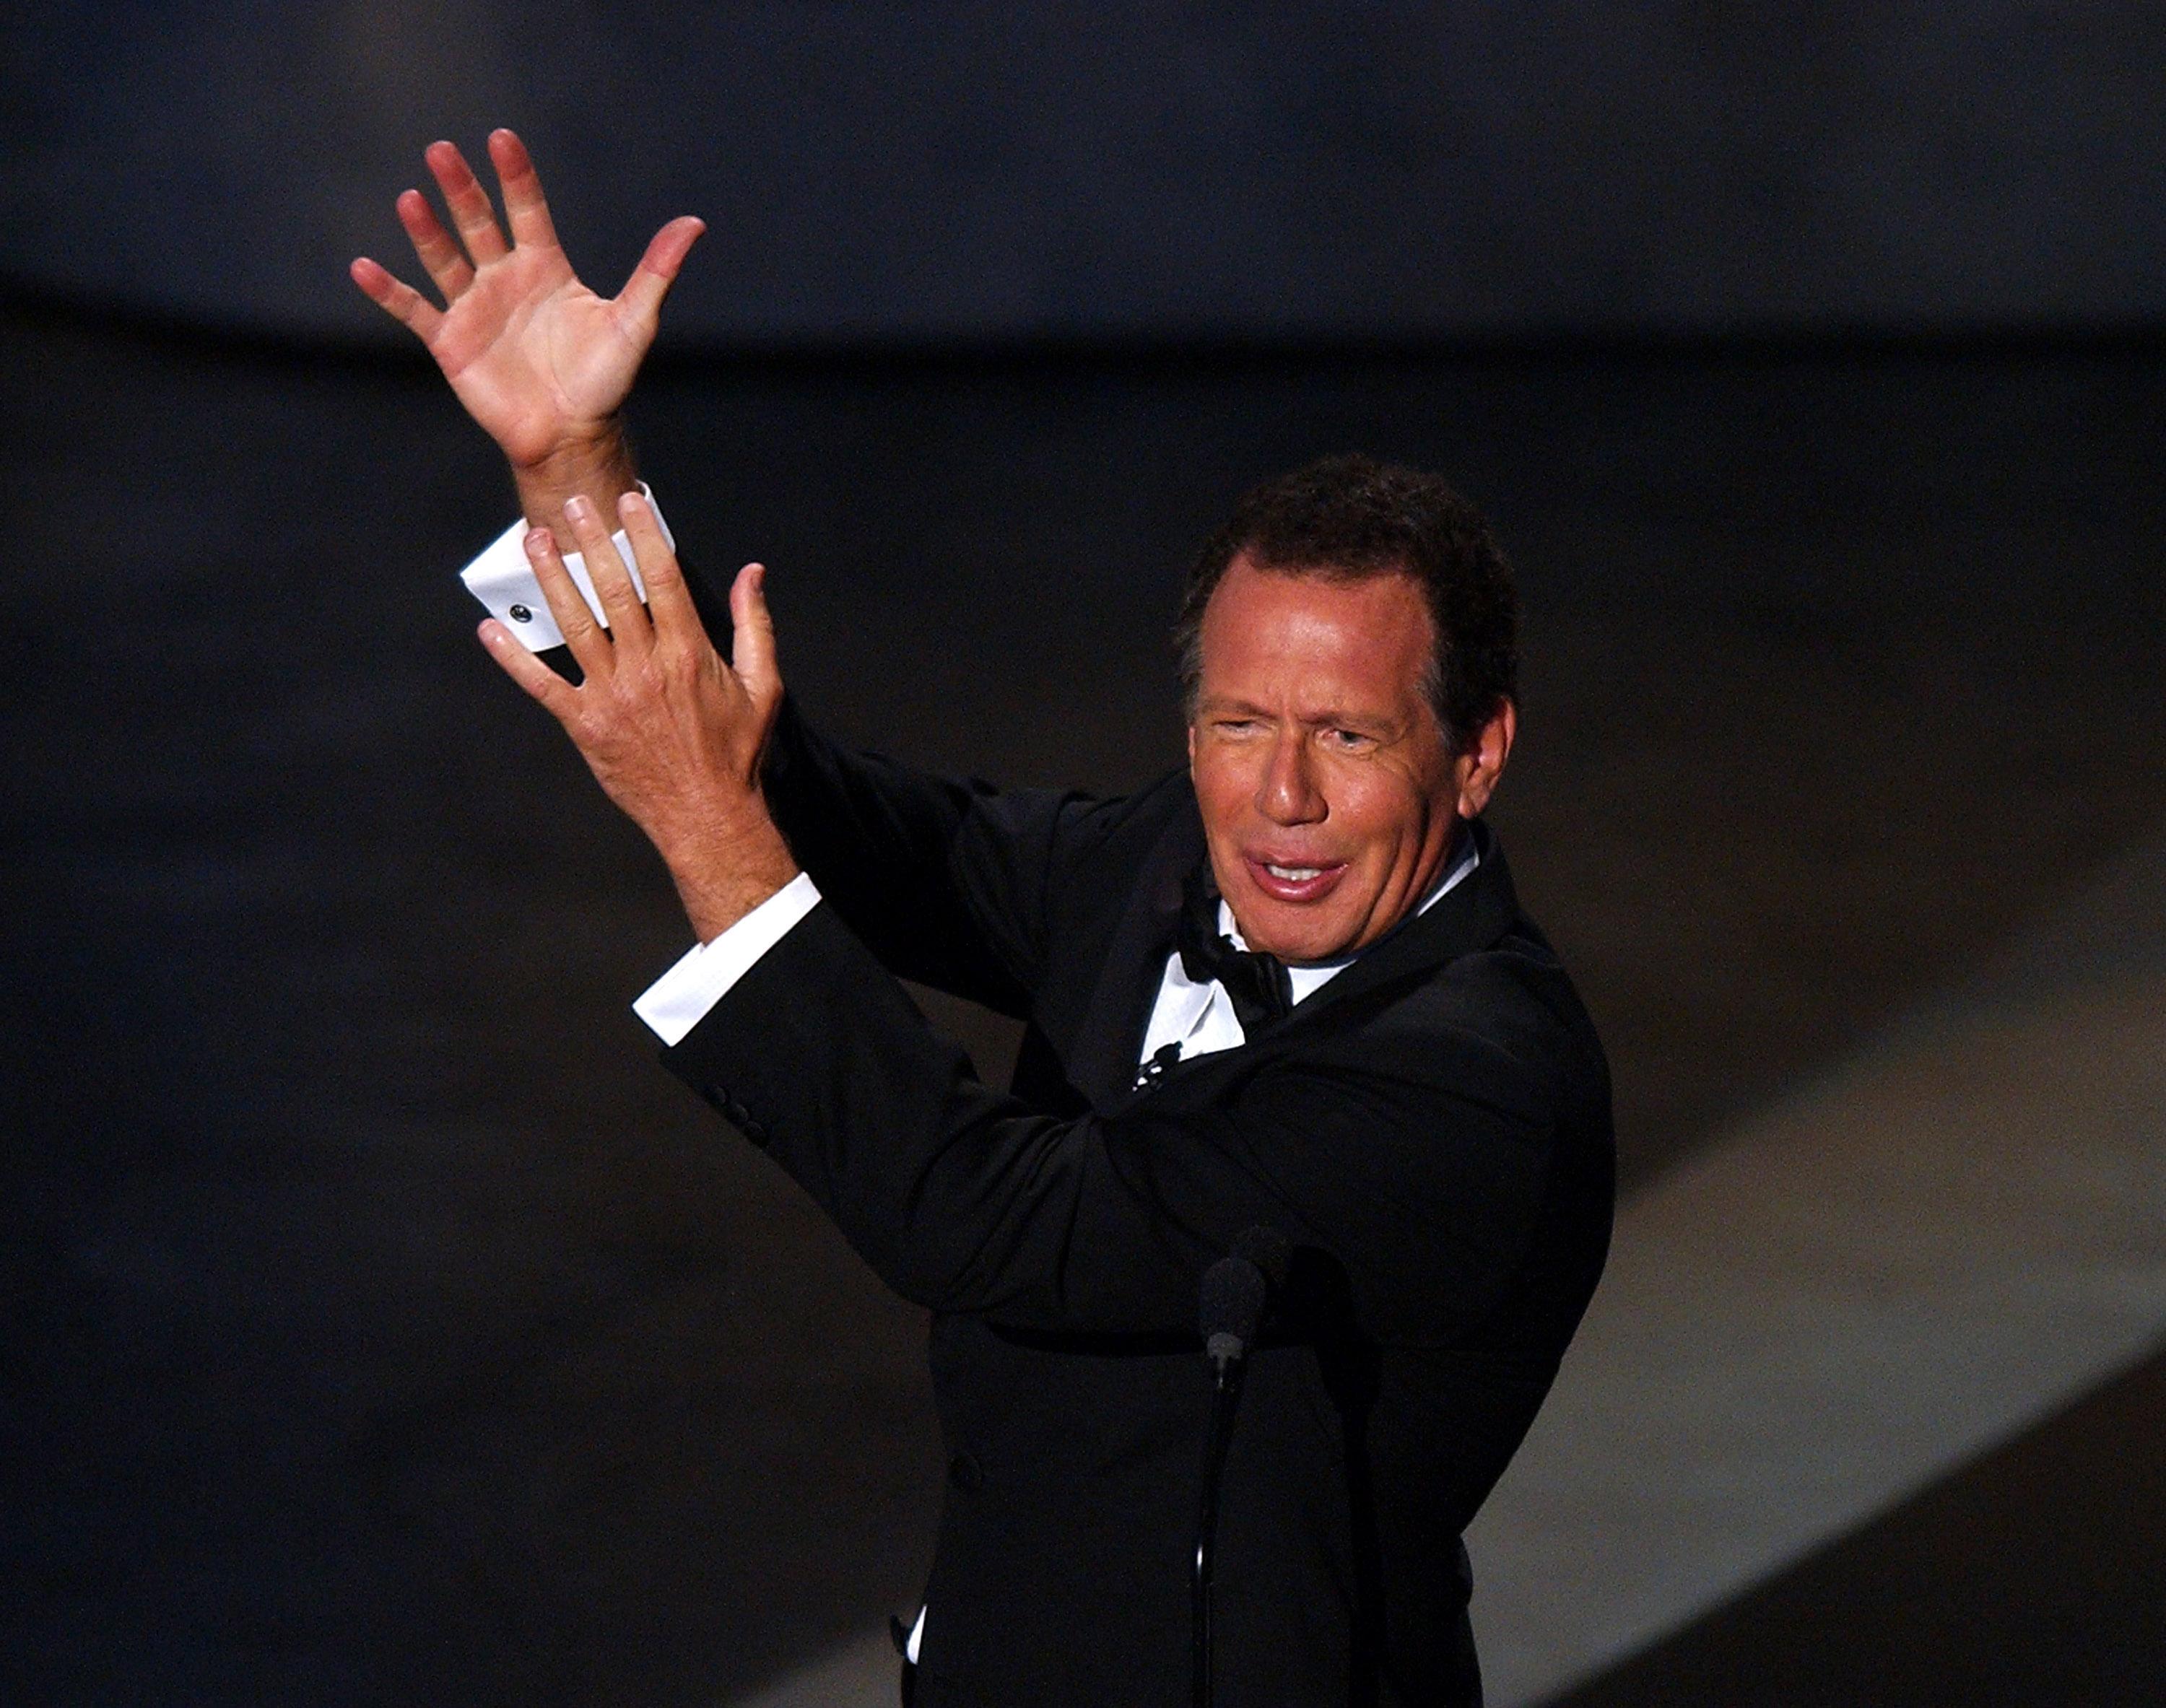 Garry Shandling, who died Mar. 24,  hosting the 56th Annual Primetime Emmy Awards in 2004